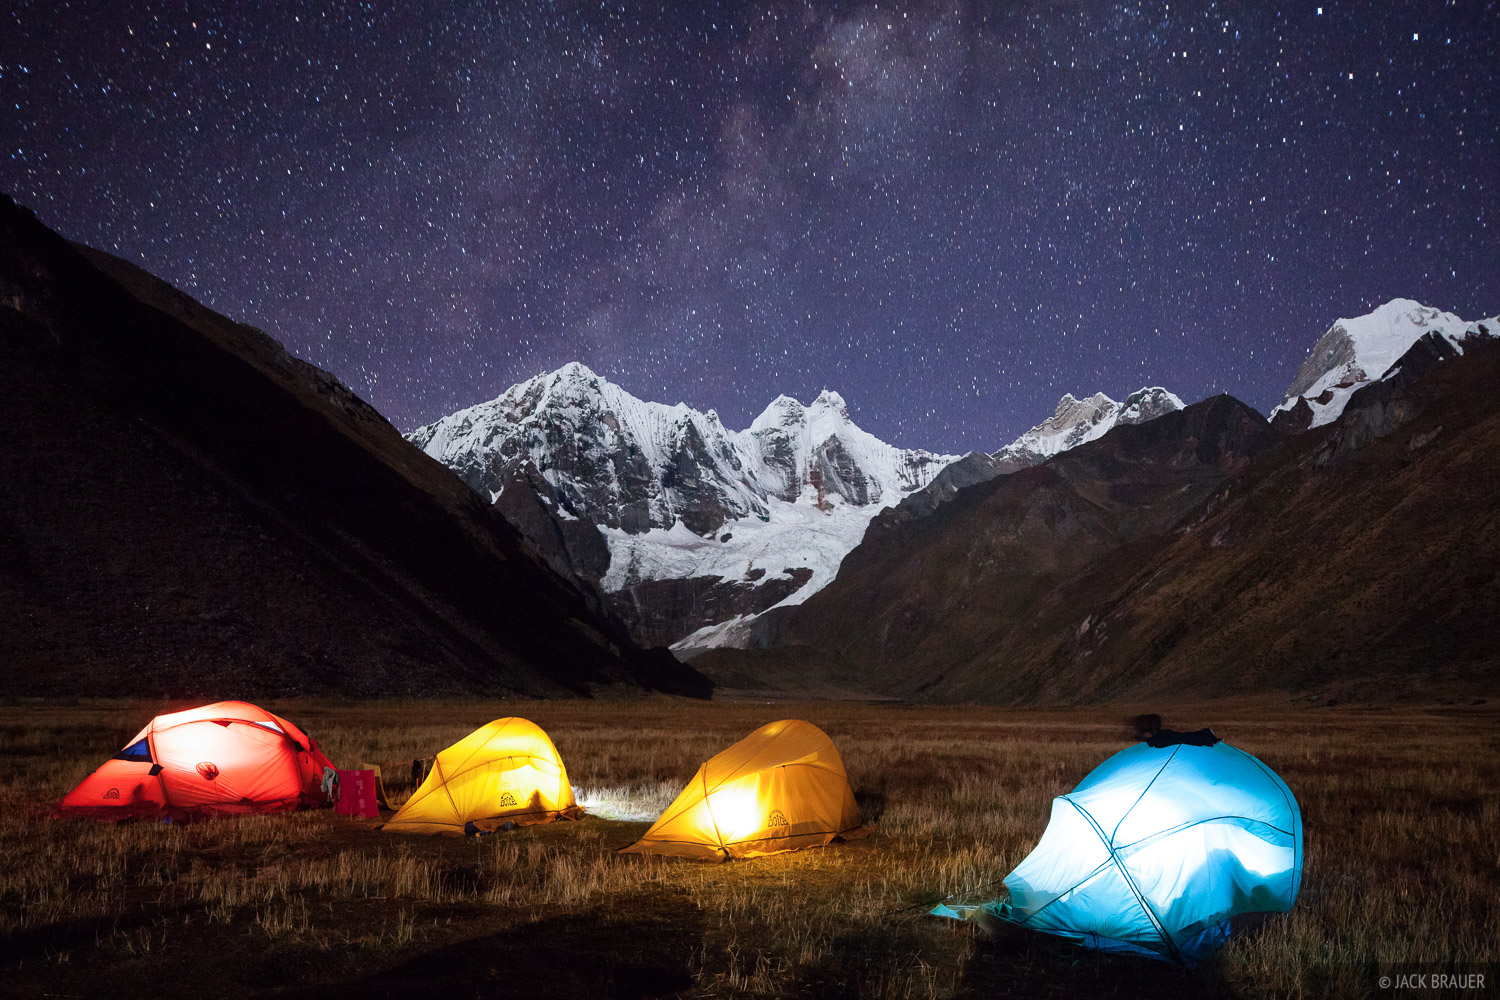 Cordillera Huayhuash, Peru, Jirishanca, night, stars, tents, camp, photo